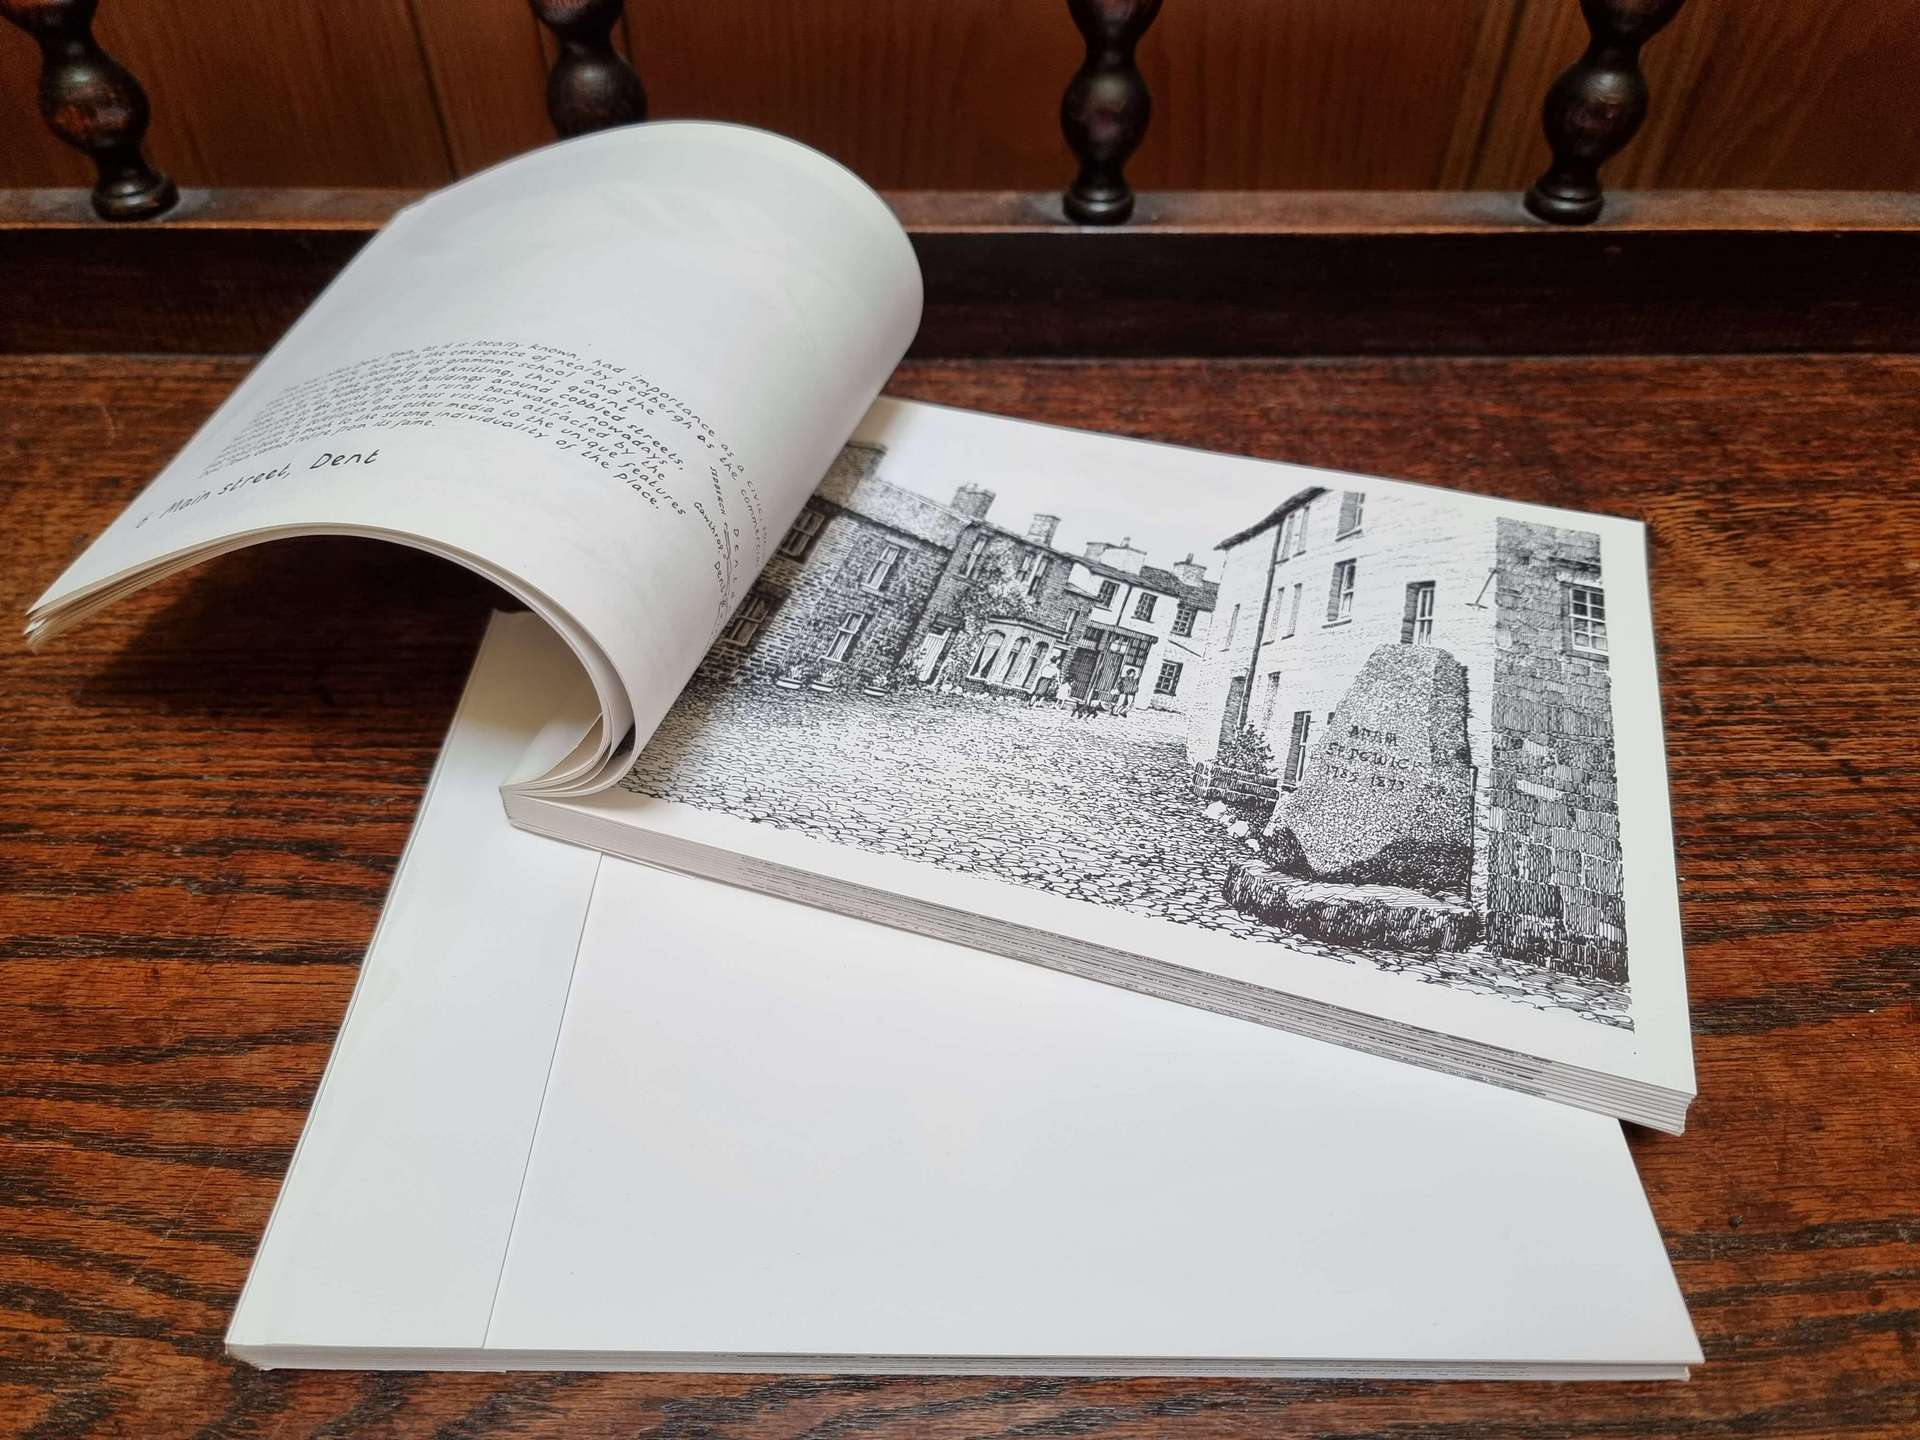 A First and Second Dales Sketchbooks